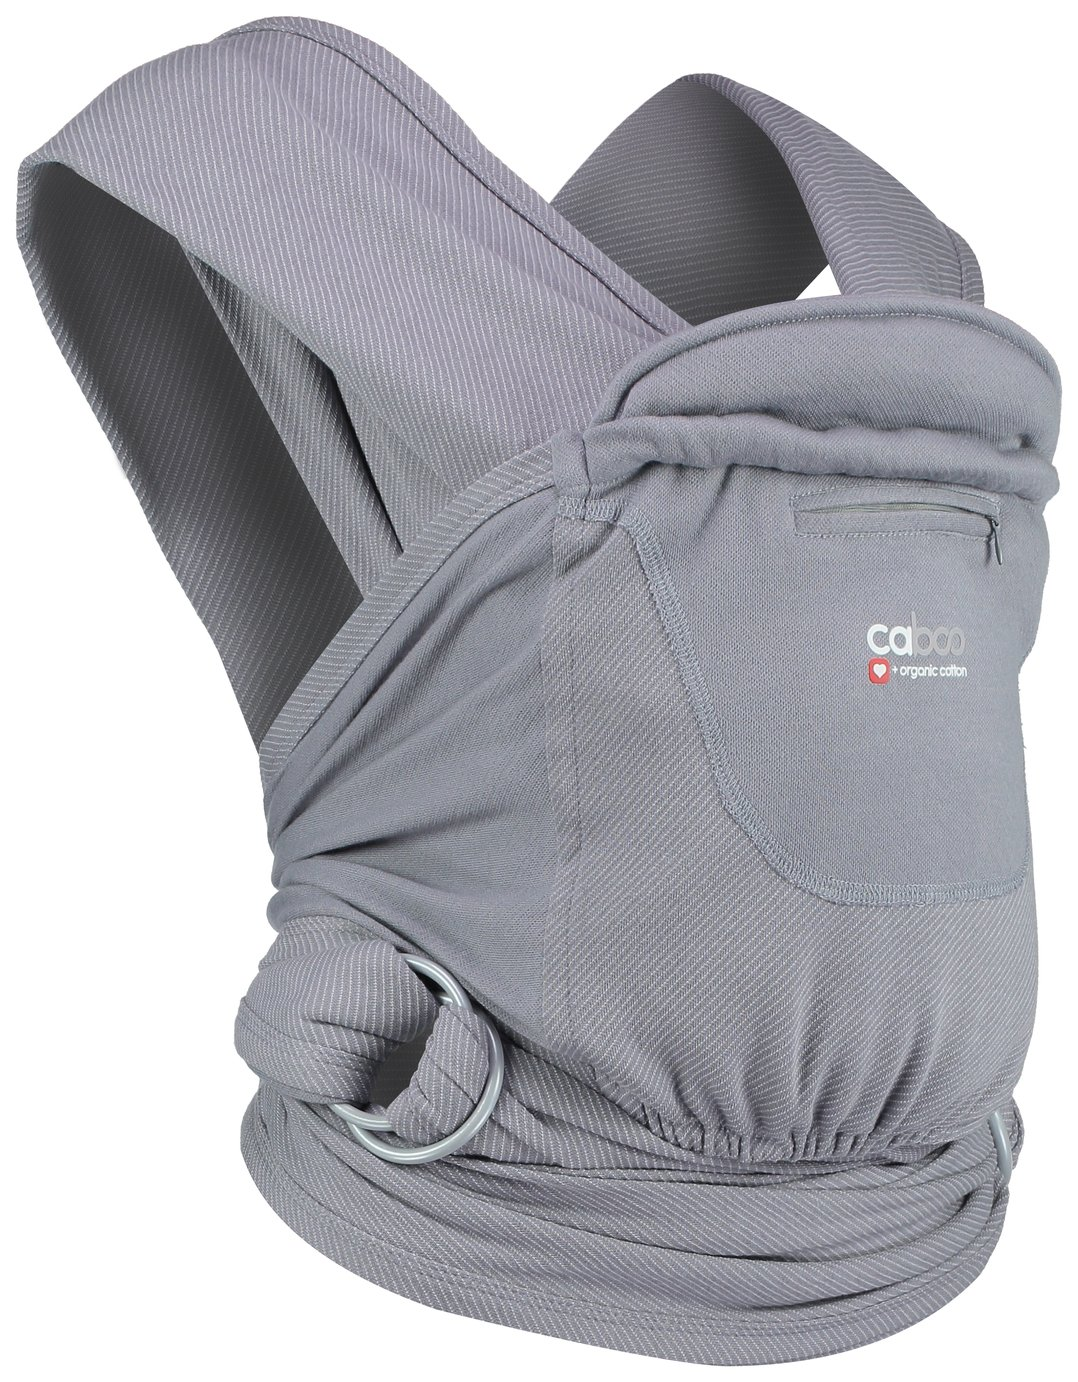 Image of Cabboo + Organic Stripe Newborn Carrier - Titanium